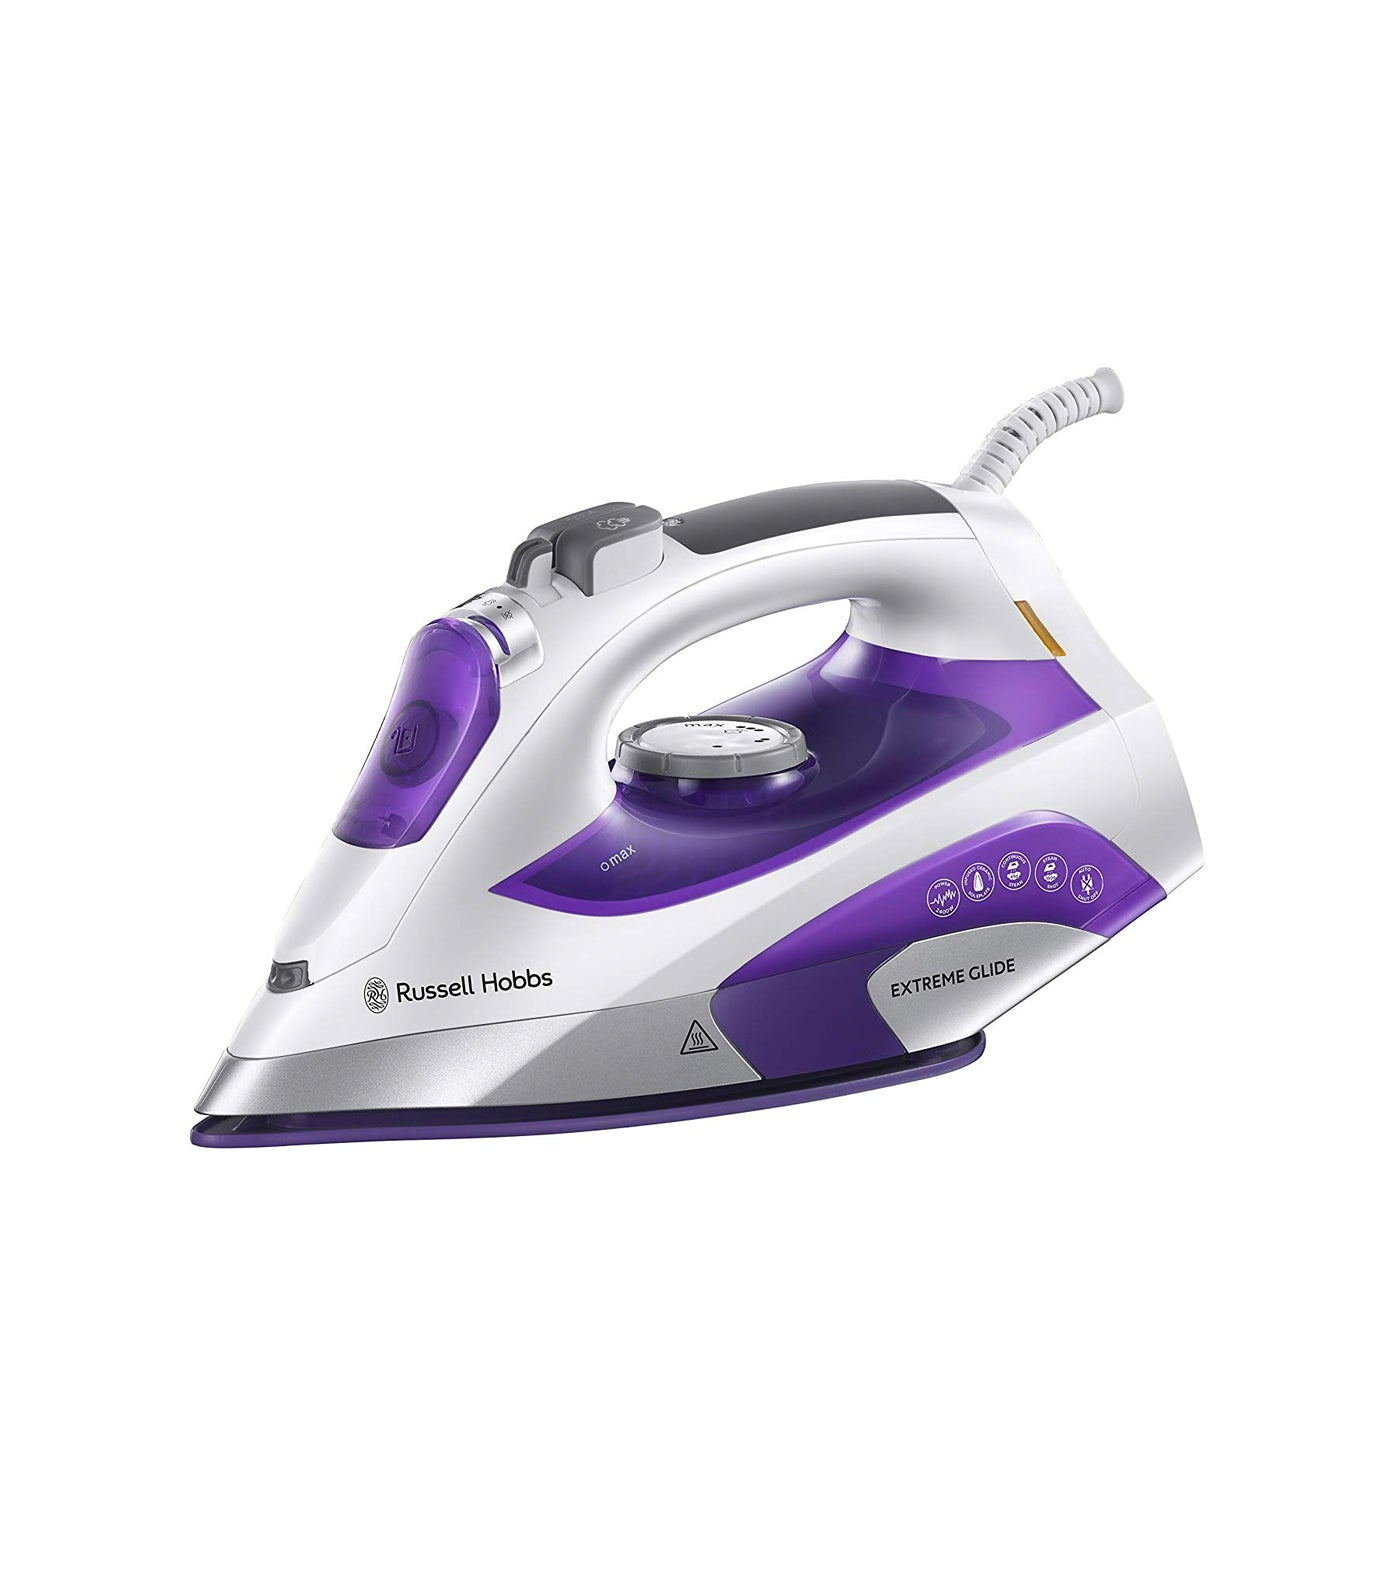 Russell Hobbs Extreme Glide Steam Traveller Iron|2400W|Self Clean|White /& Purple